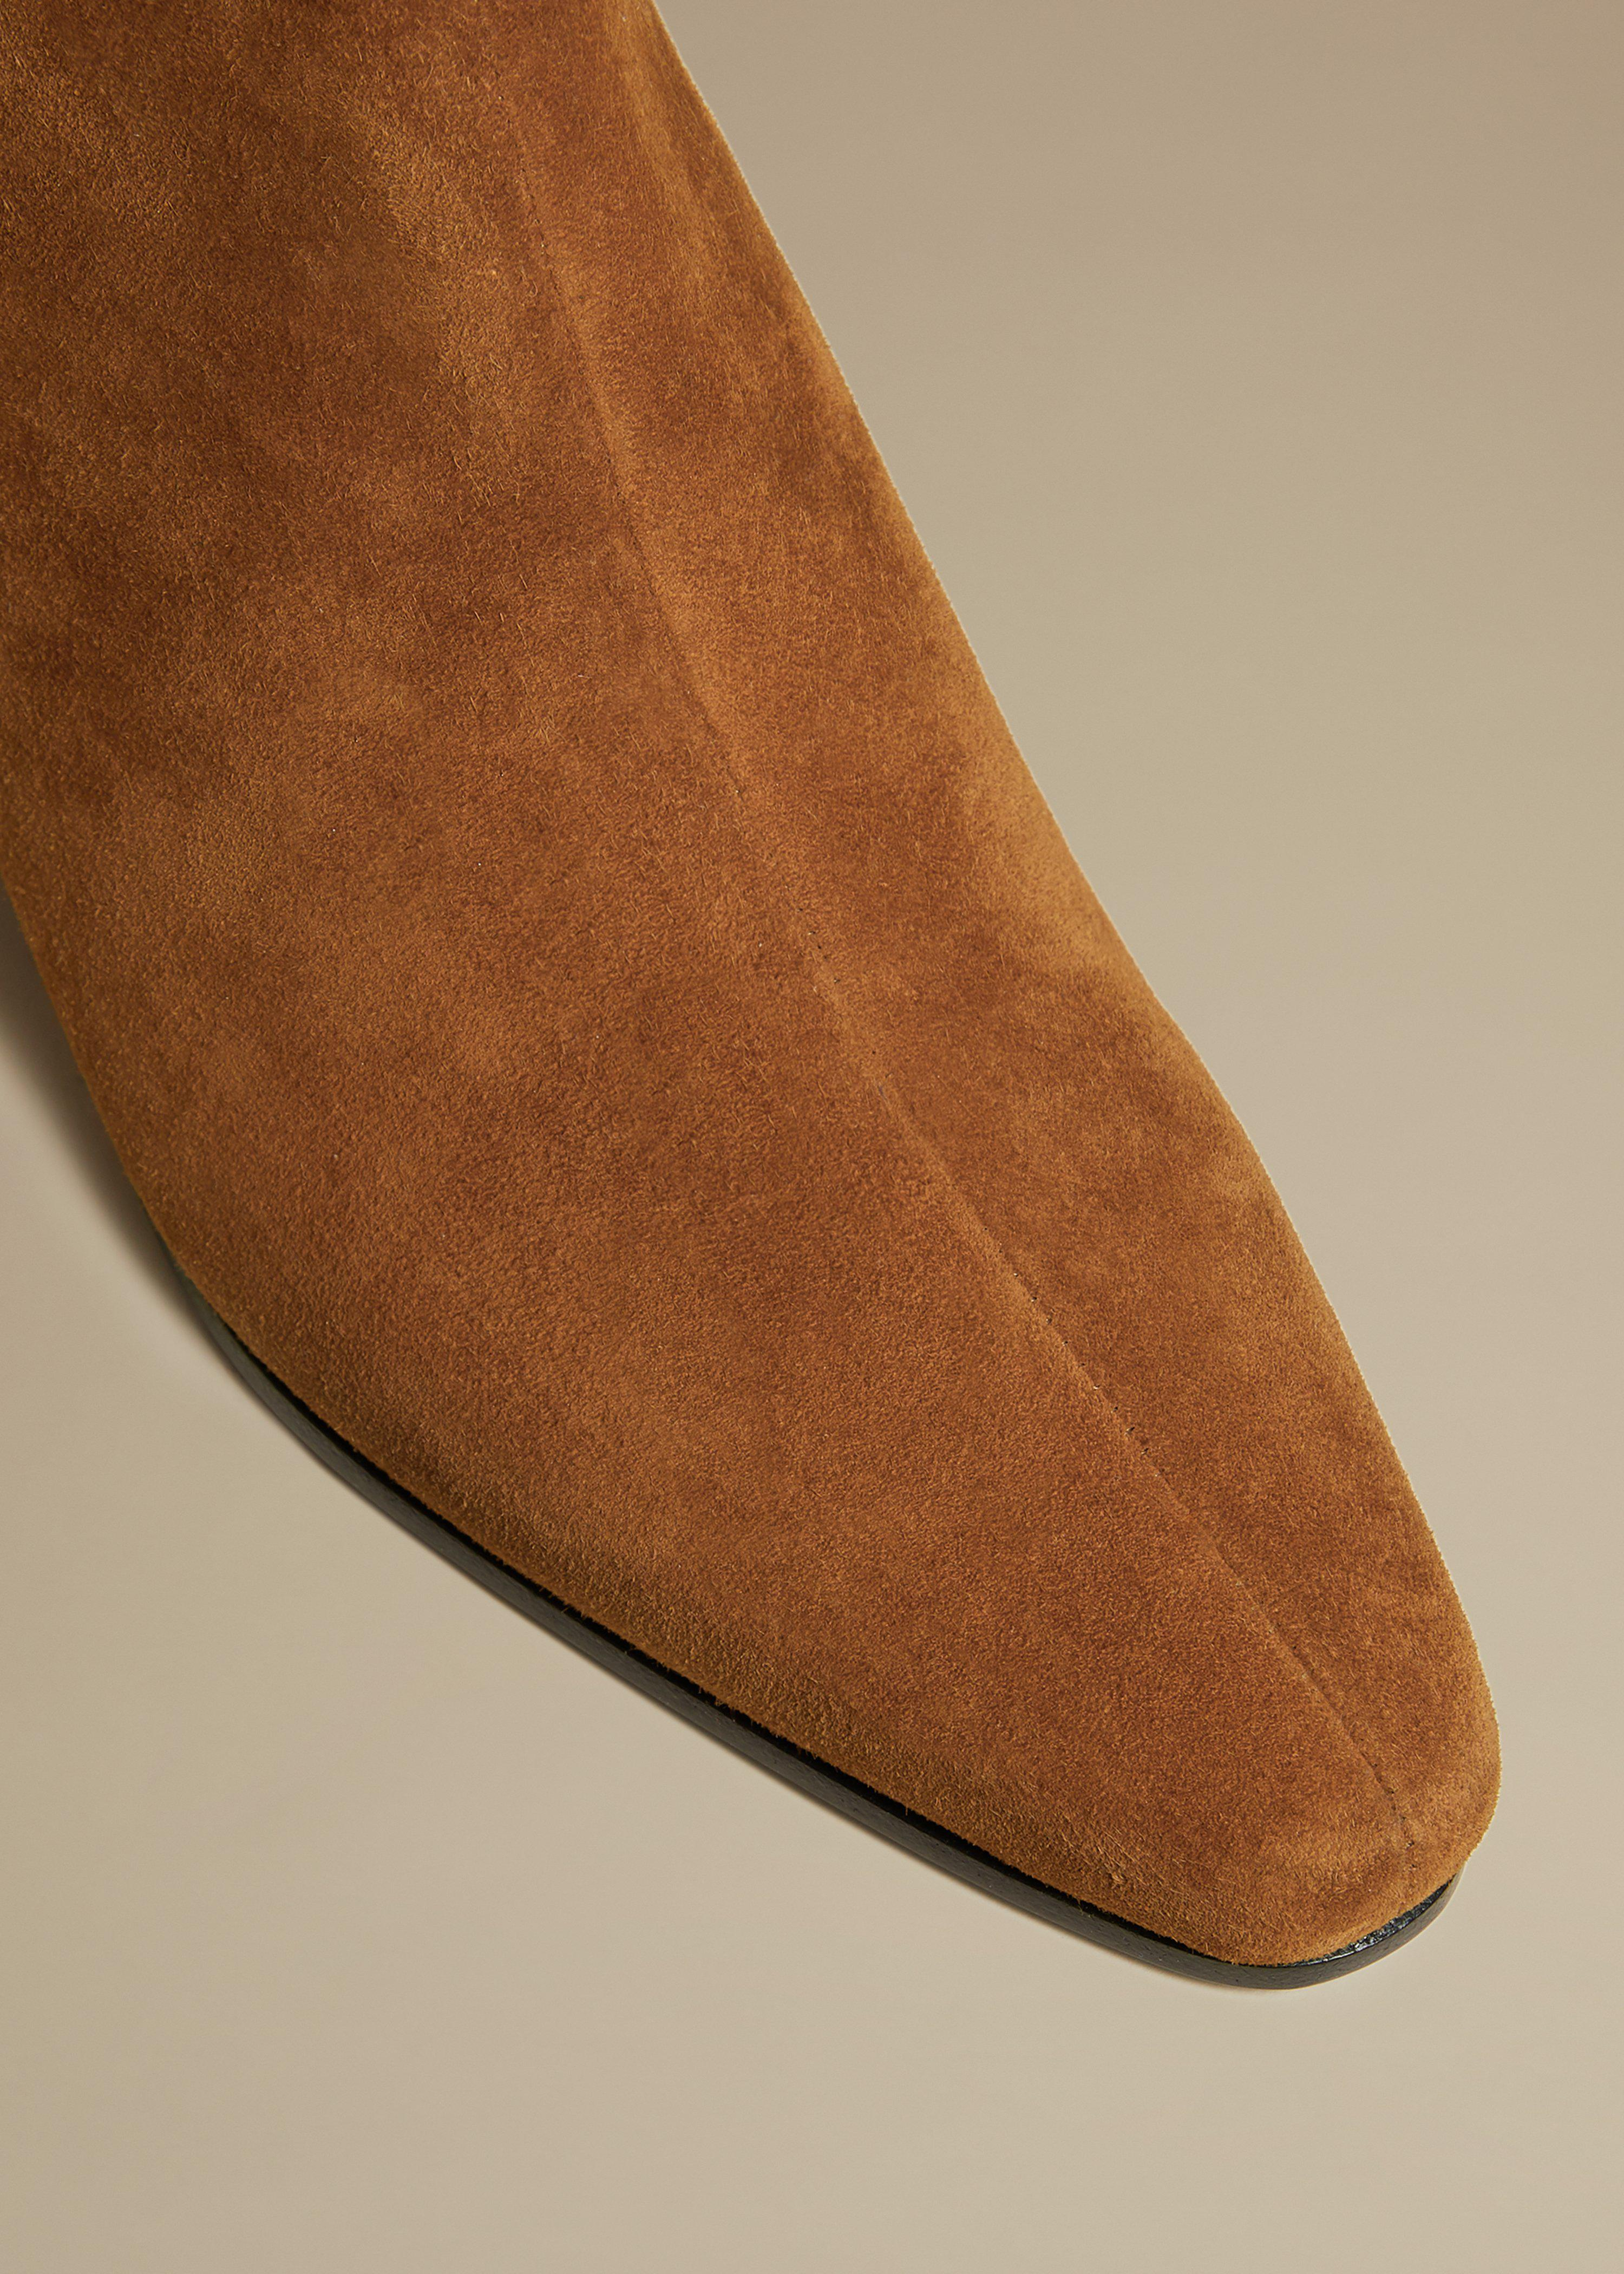 The Saratoga Boot in Caramel Suede 2